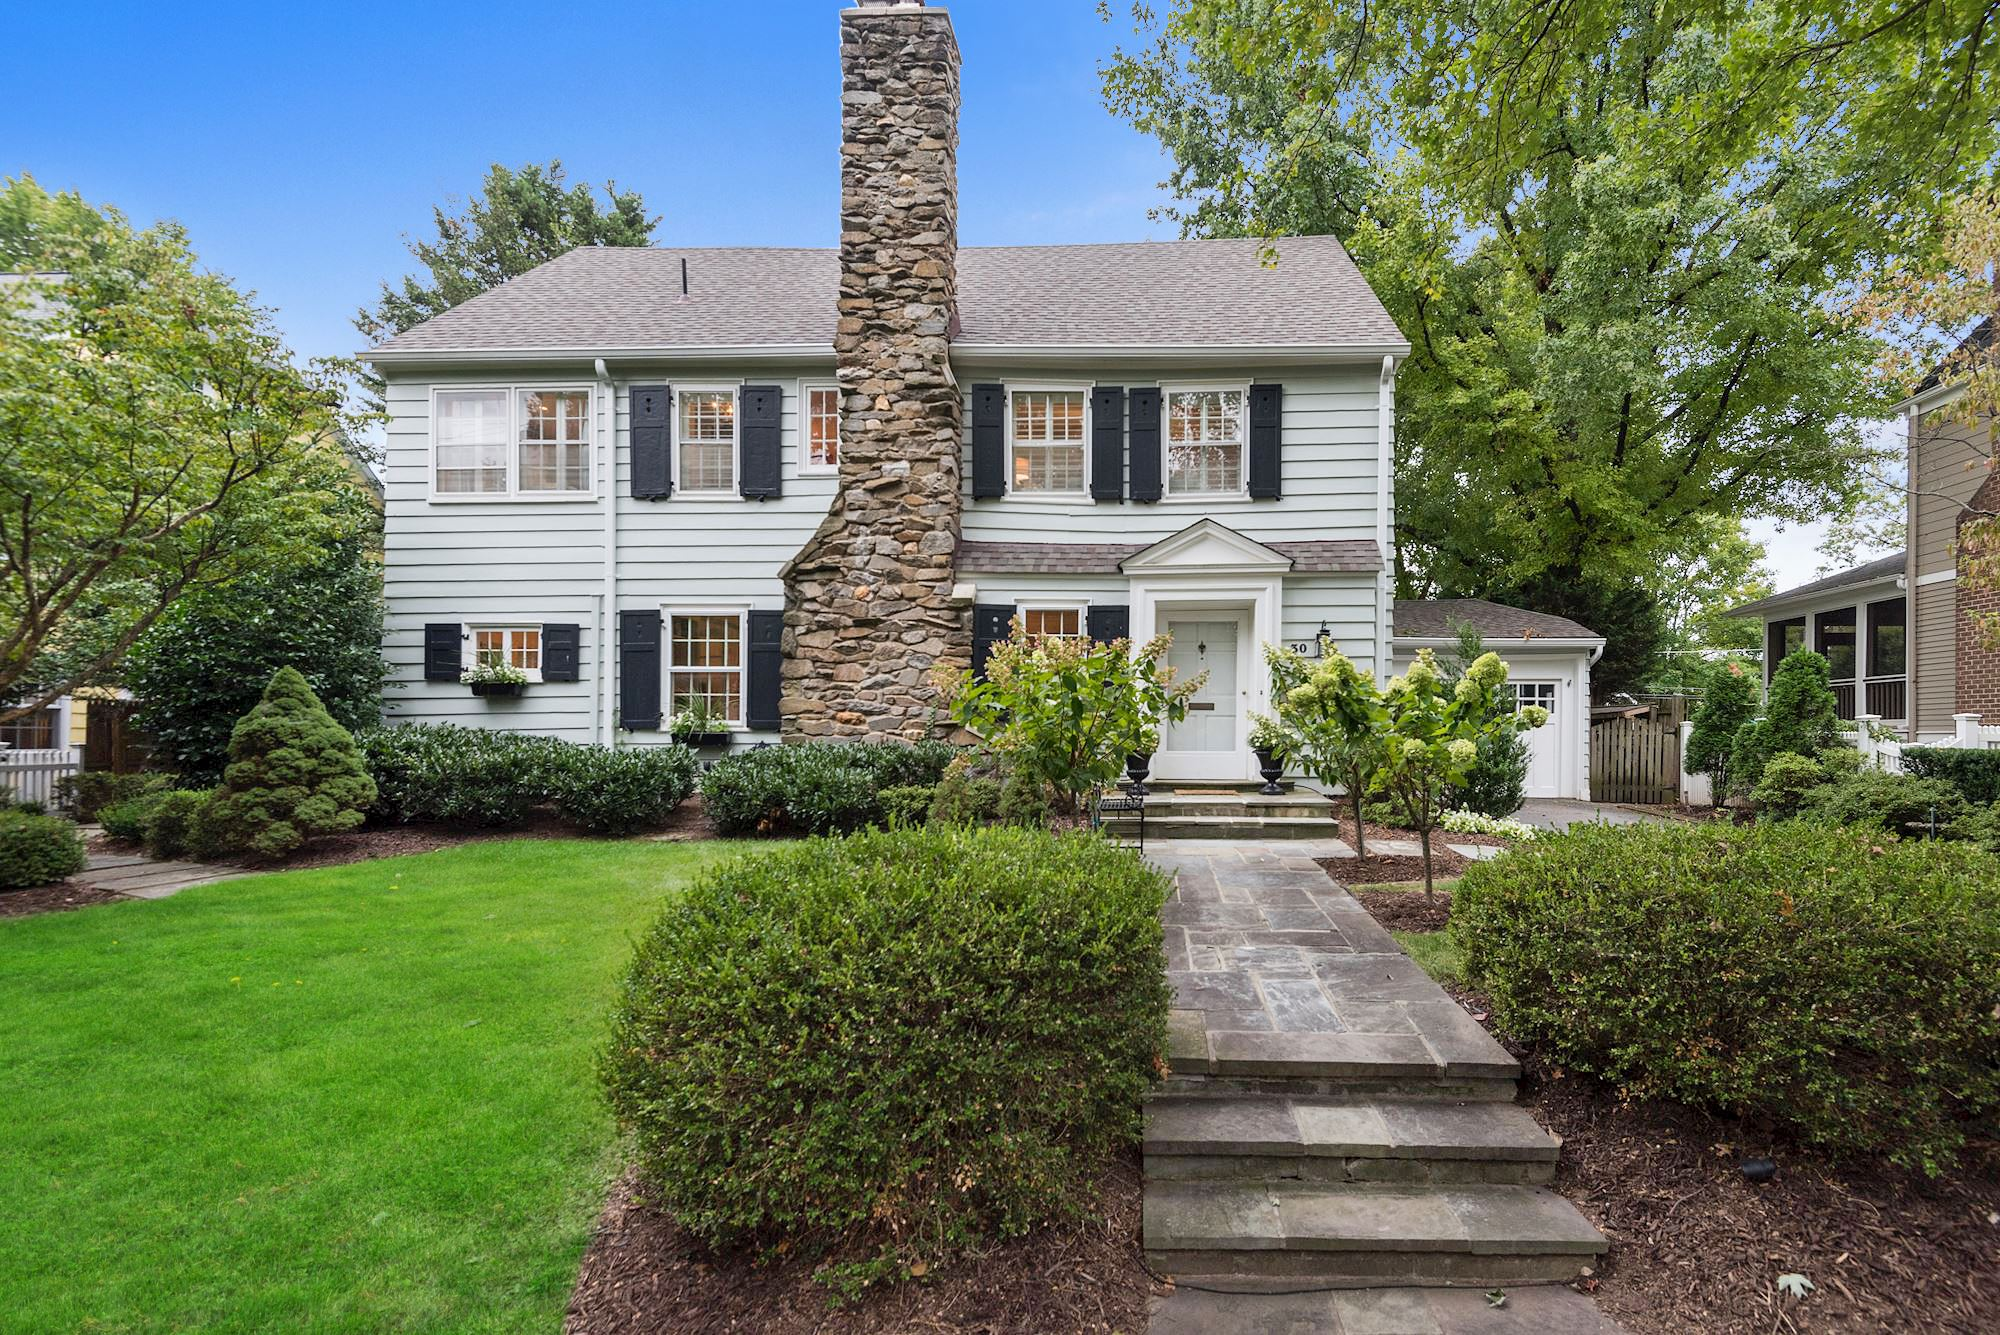 Homes For Sale Smith Island Md